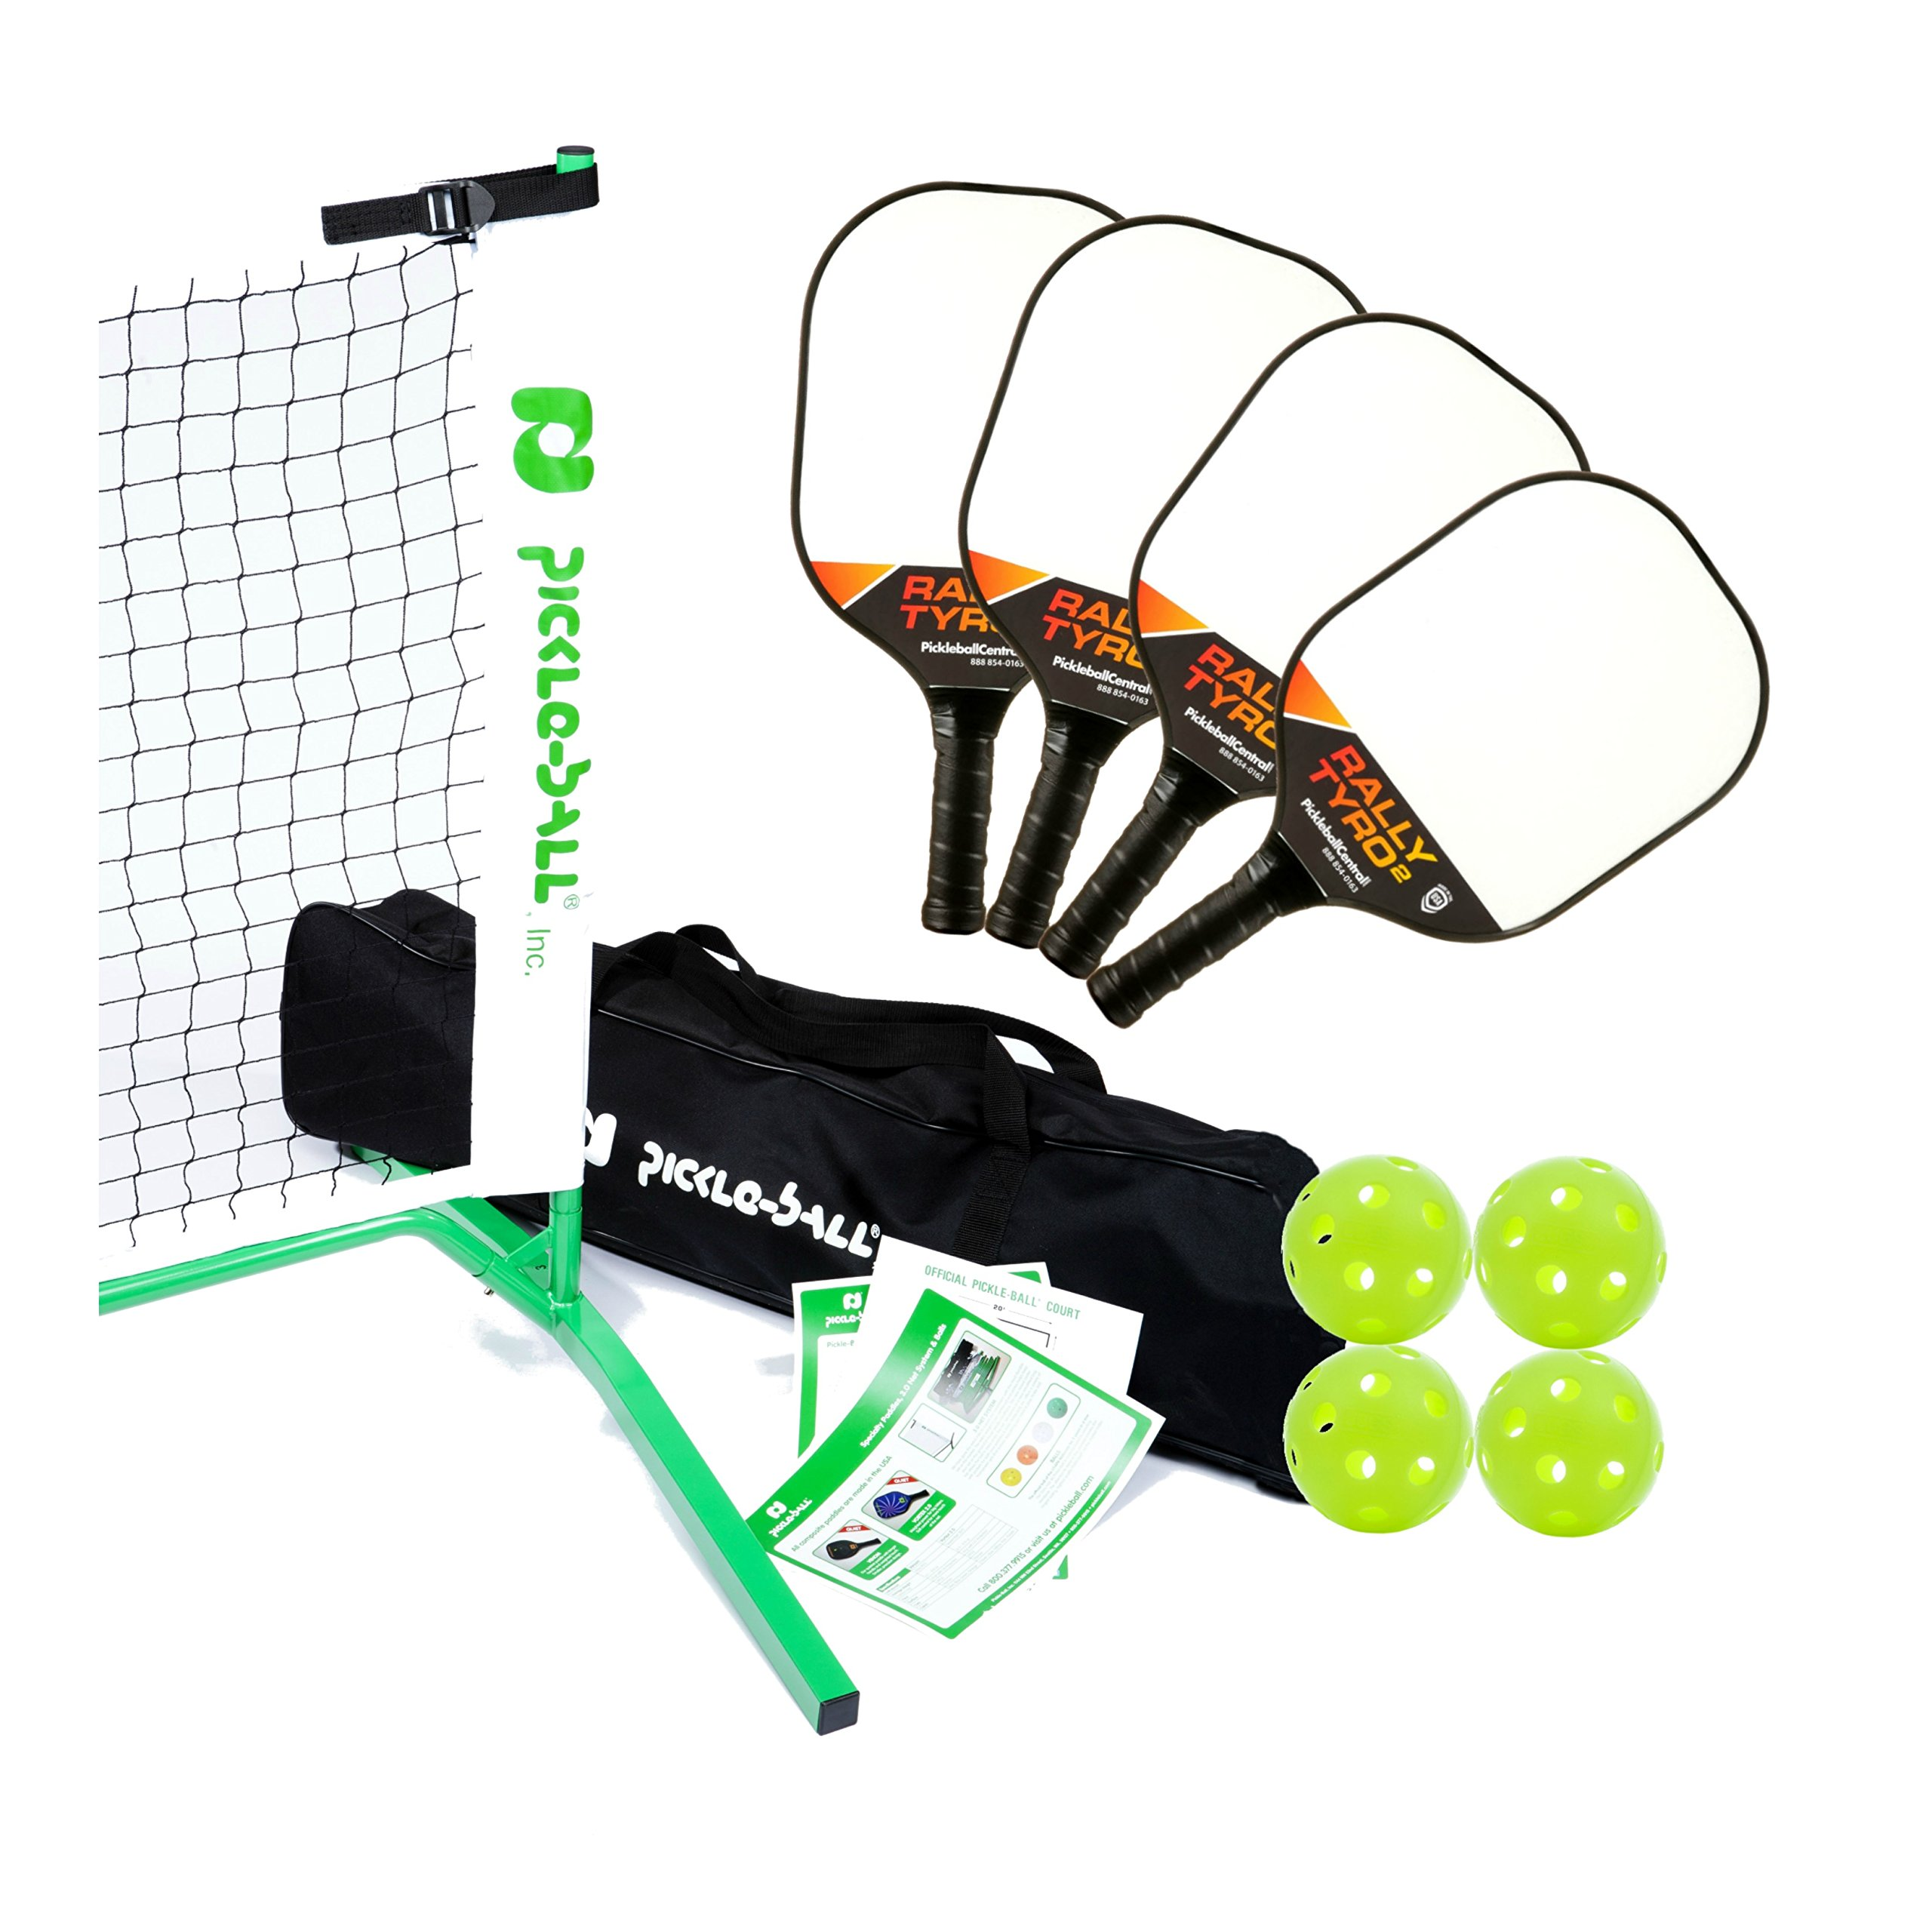 Rally Tyro 2 Pickleball Paddle, Portable Net and Ball Set (Includes Metal Frame + Net + 4 composite paddles + 4 balls + Rules Sheet in Carry Bag) by PickleballCentral